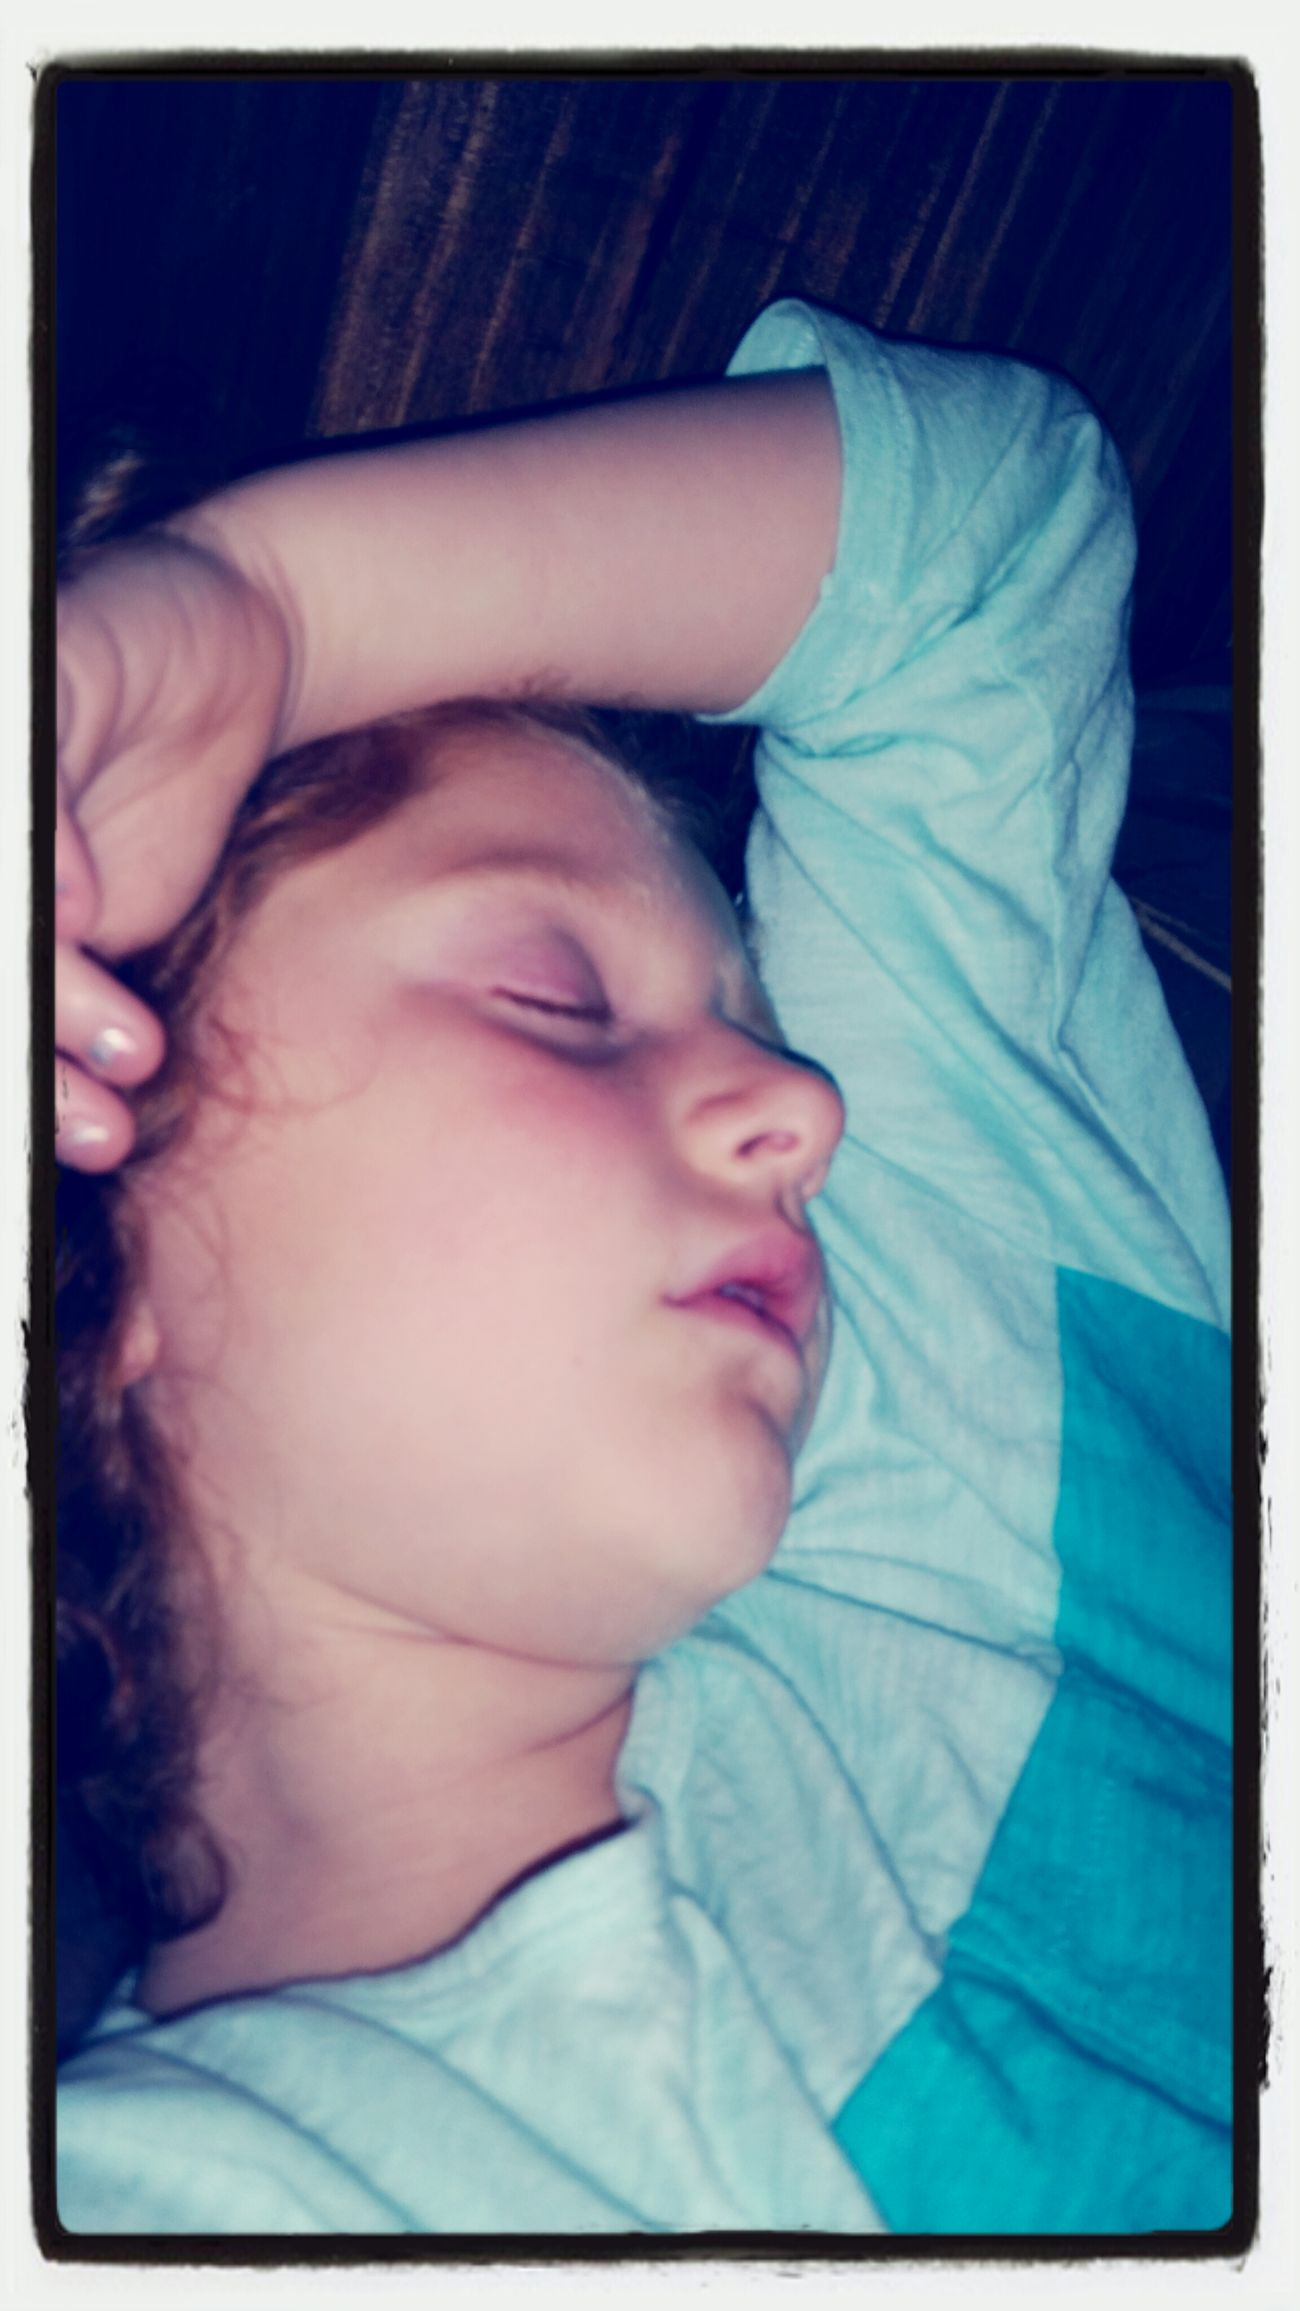 Most precious site before closing my eyes for the night......love love love this little munchkin!